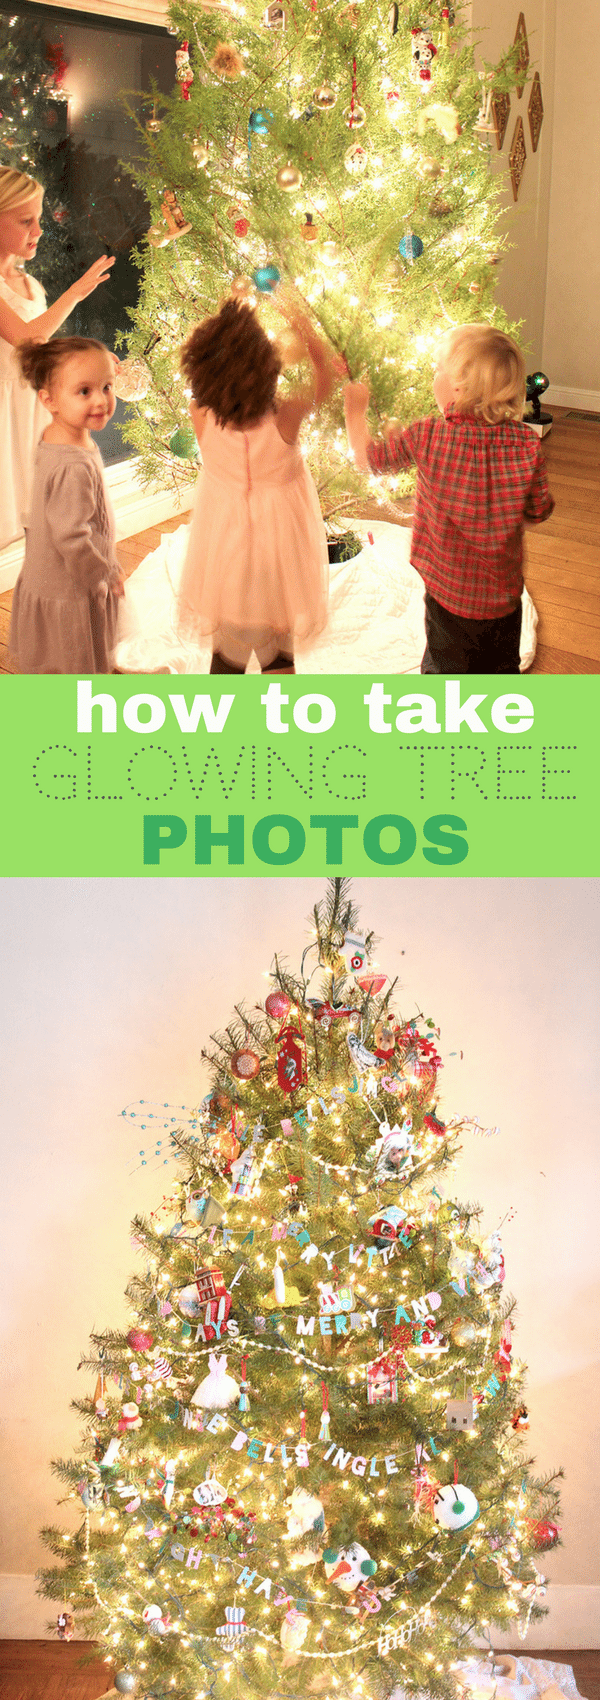 Photography Tutorial: How to take nighttime photos of your Christmas Tree with your DSLR camera.  The settings are easy, but there are a few tricks to getting a glowing photo.